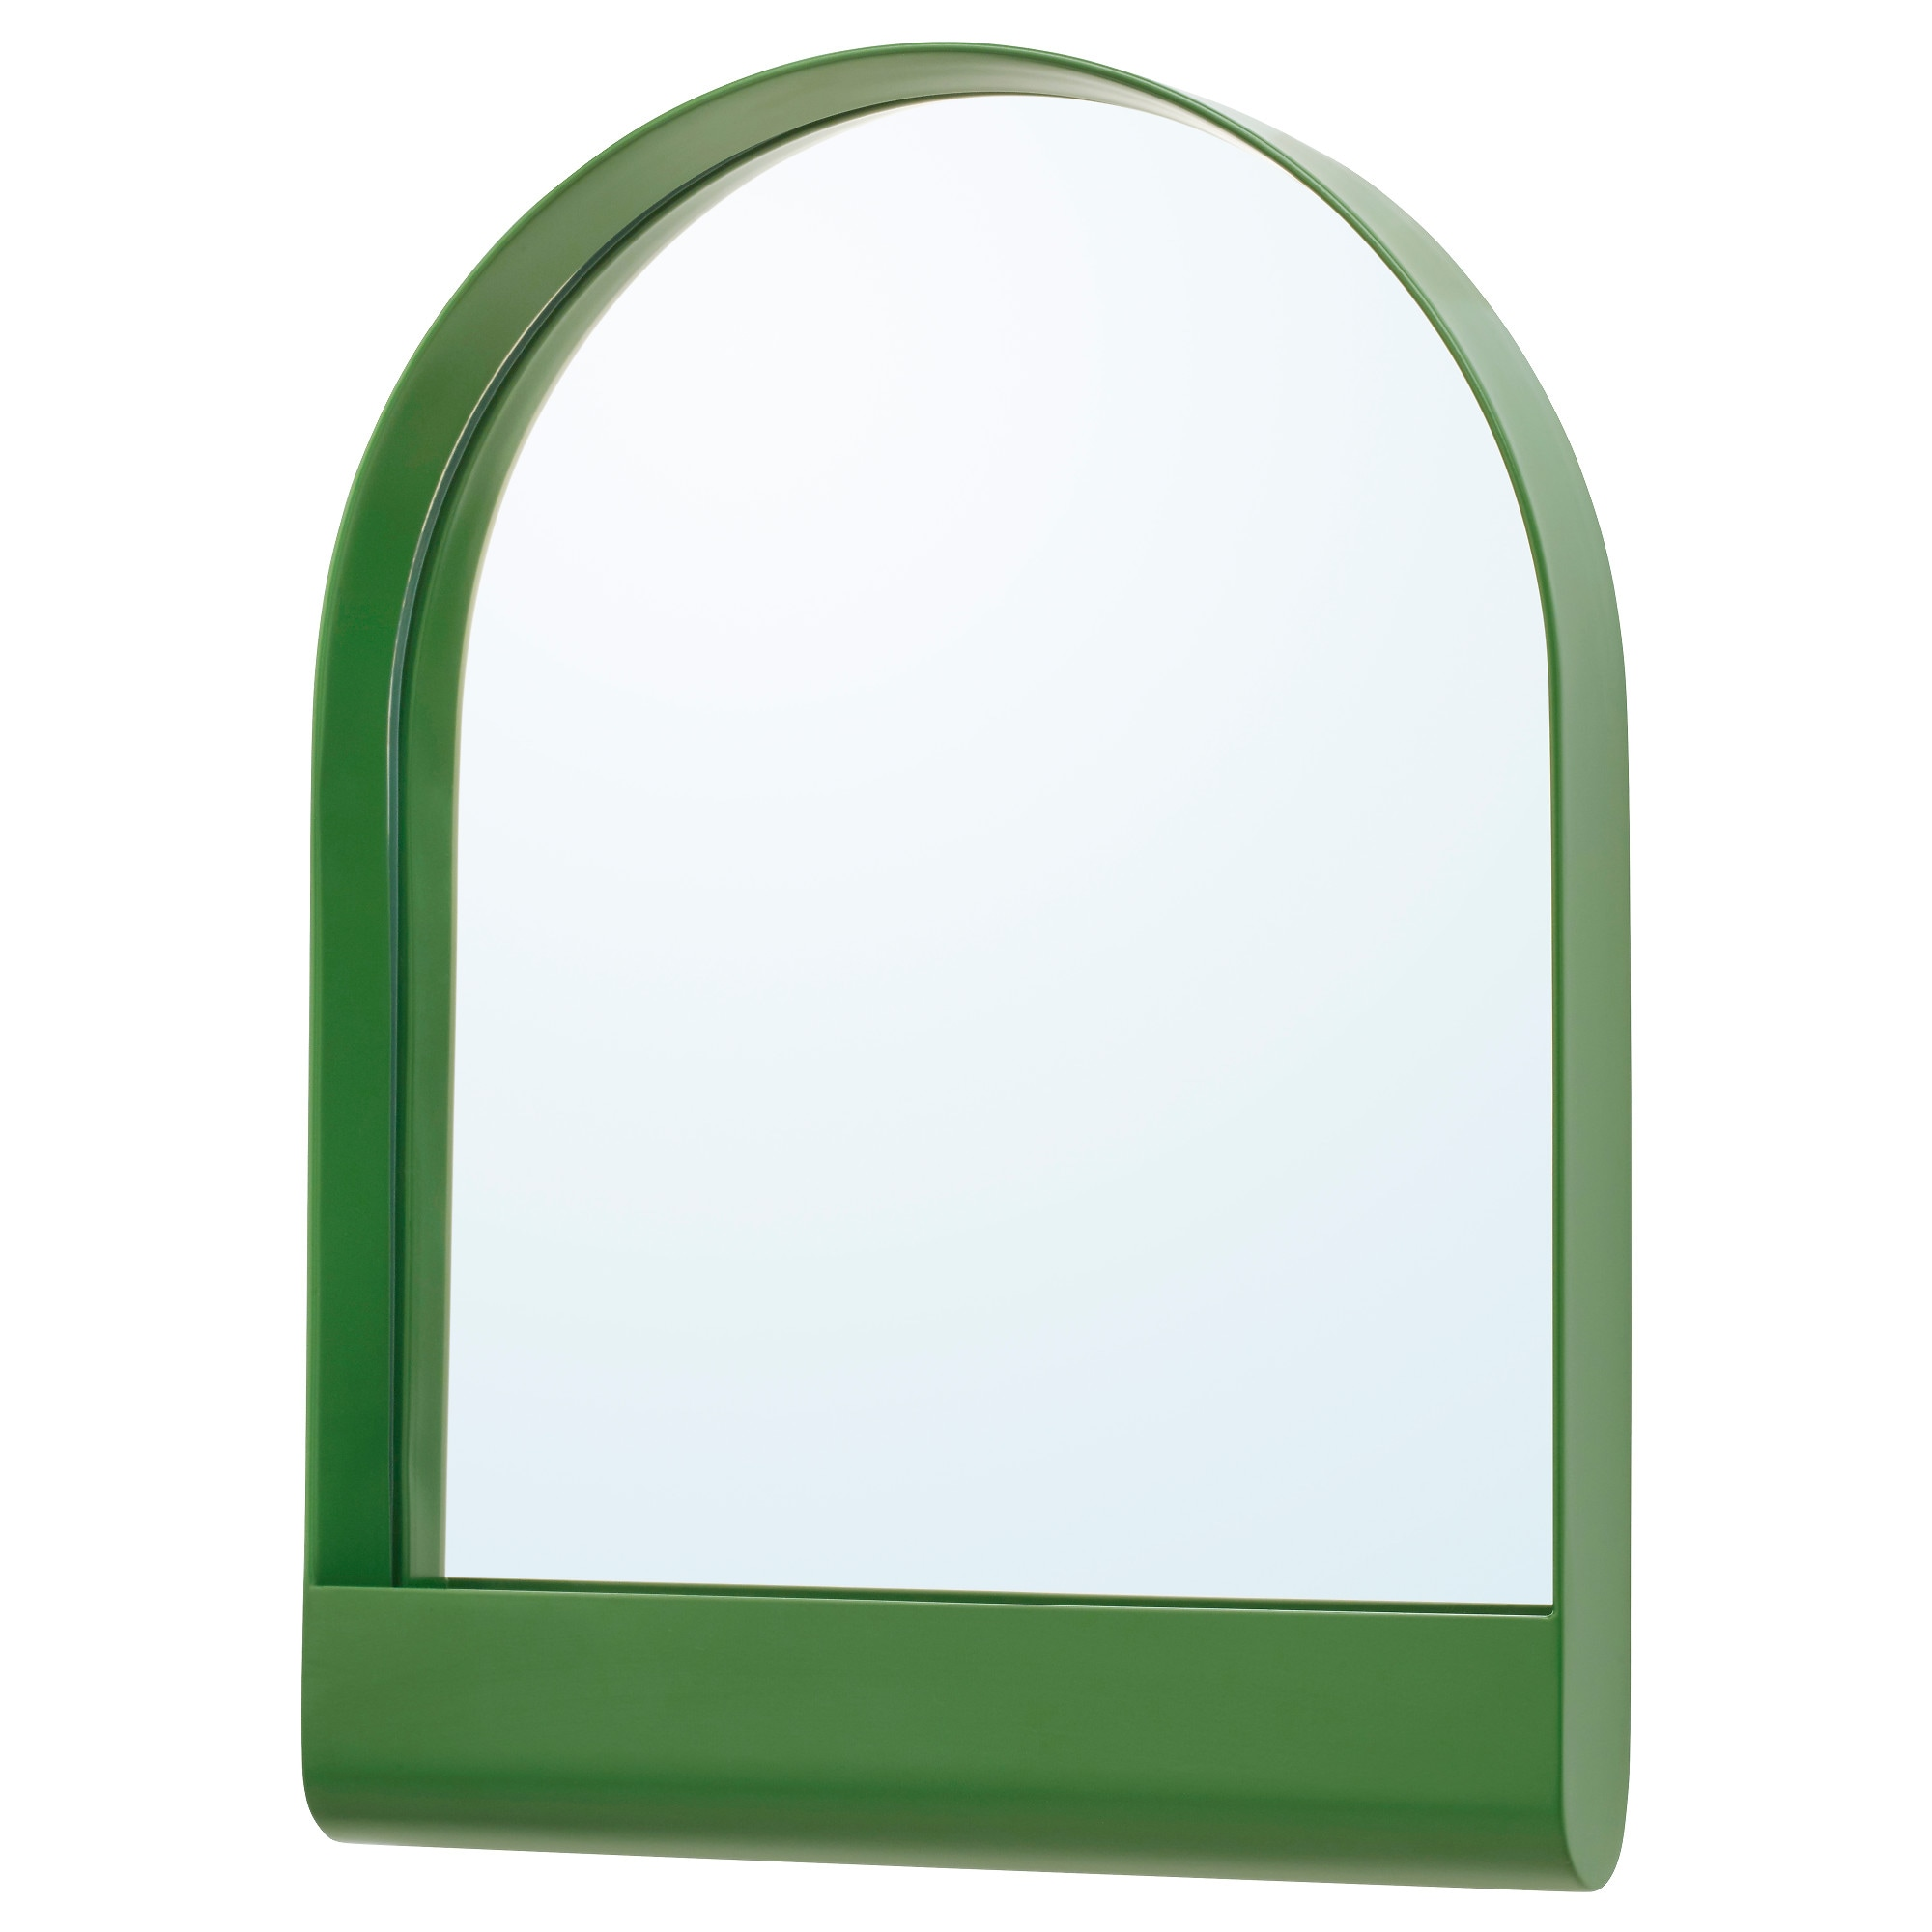 Mirrors ikea ypperlig mirror green width 11 34 depth 1 3 amipublicfo Image collections